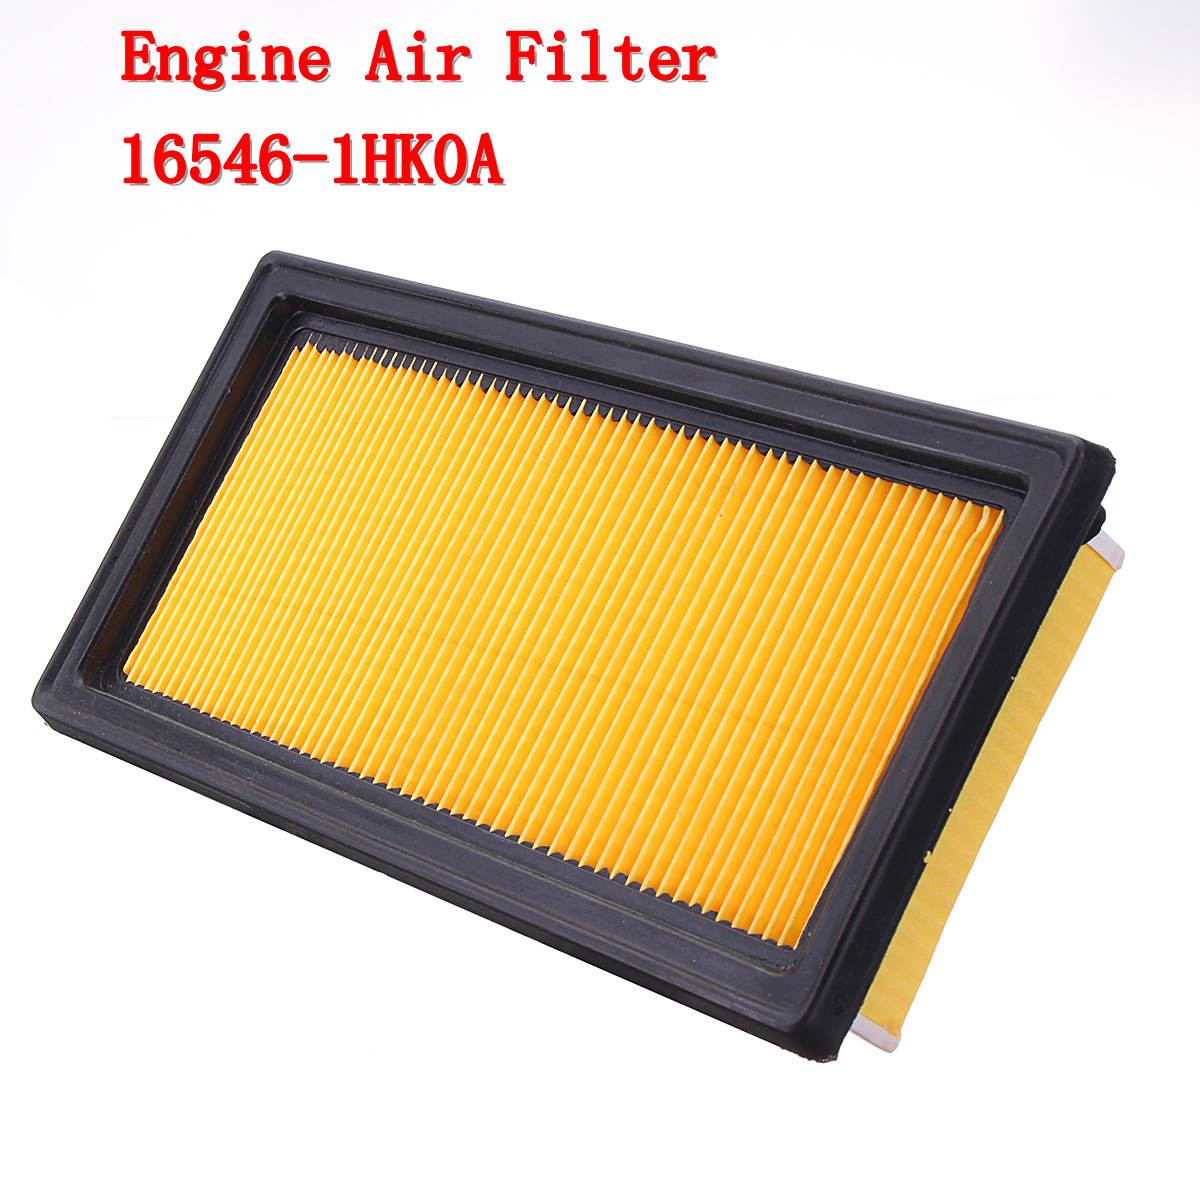 Buy Engine Filter Nissan And Get Free Shipping On 2012 Versa Fuel